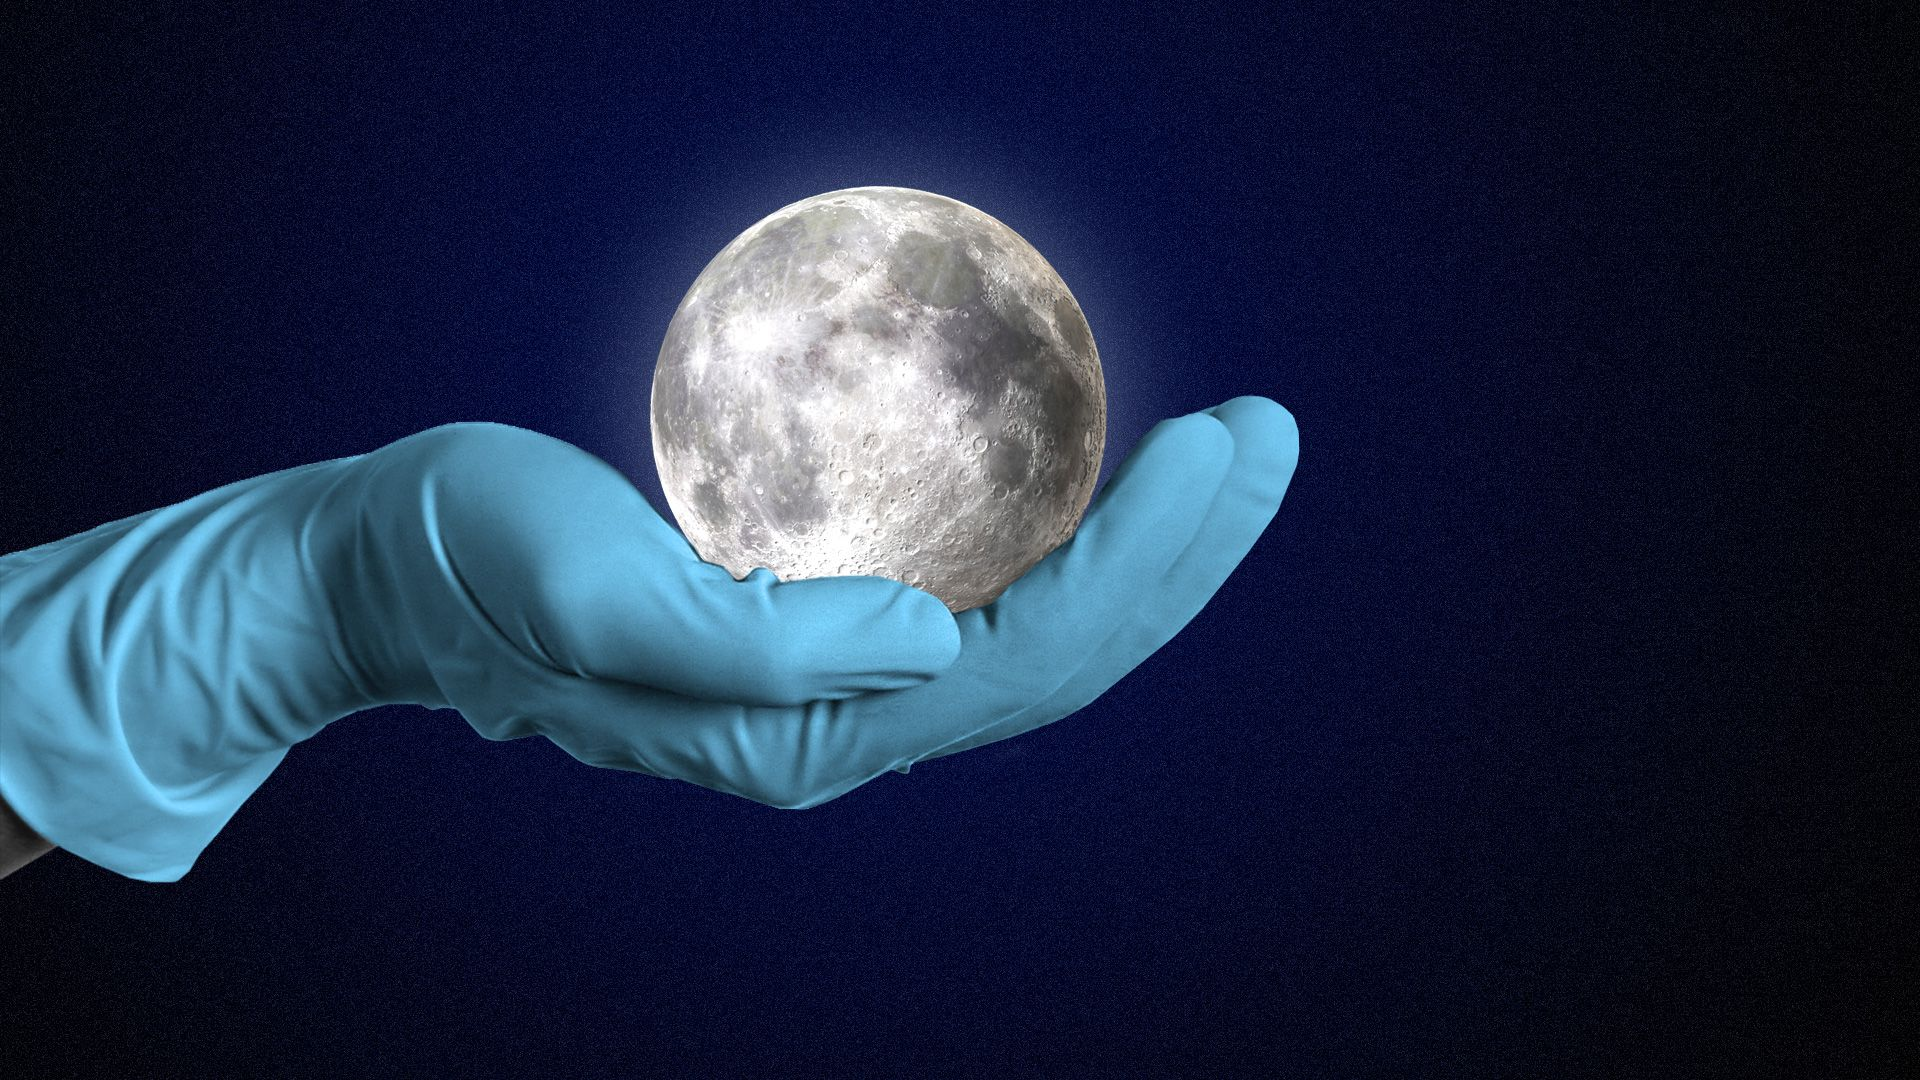 A hand with a latex glove holding the moon